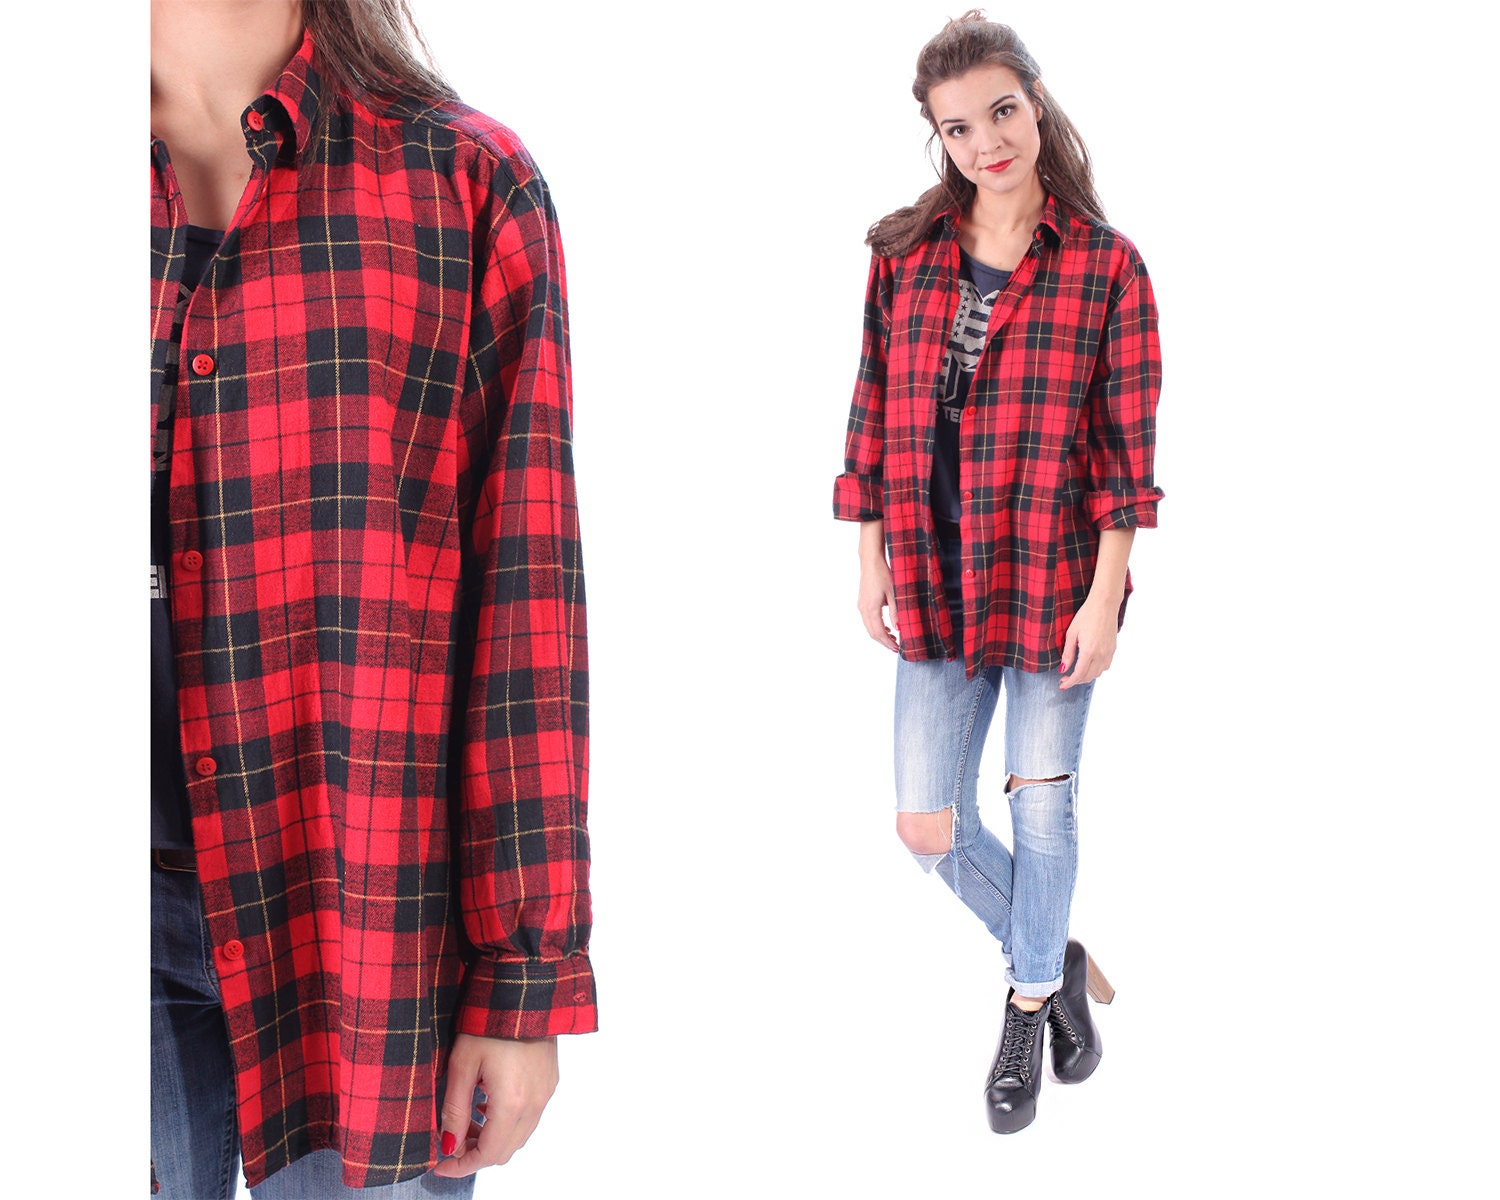 Tartan Plaid Lumberjack Red Shirt 70s Flannel Jacket Scottish